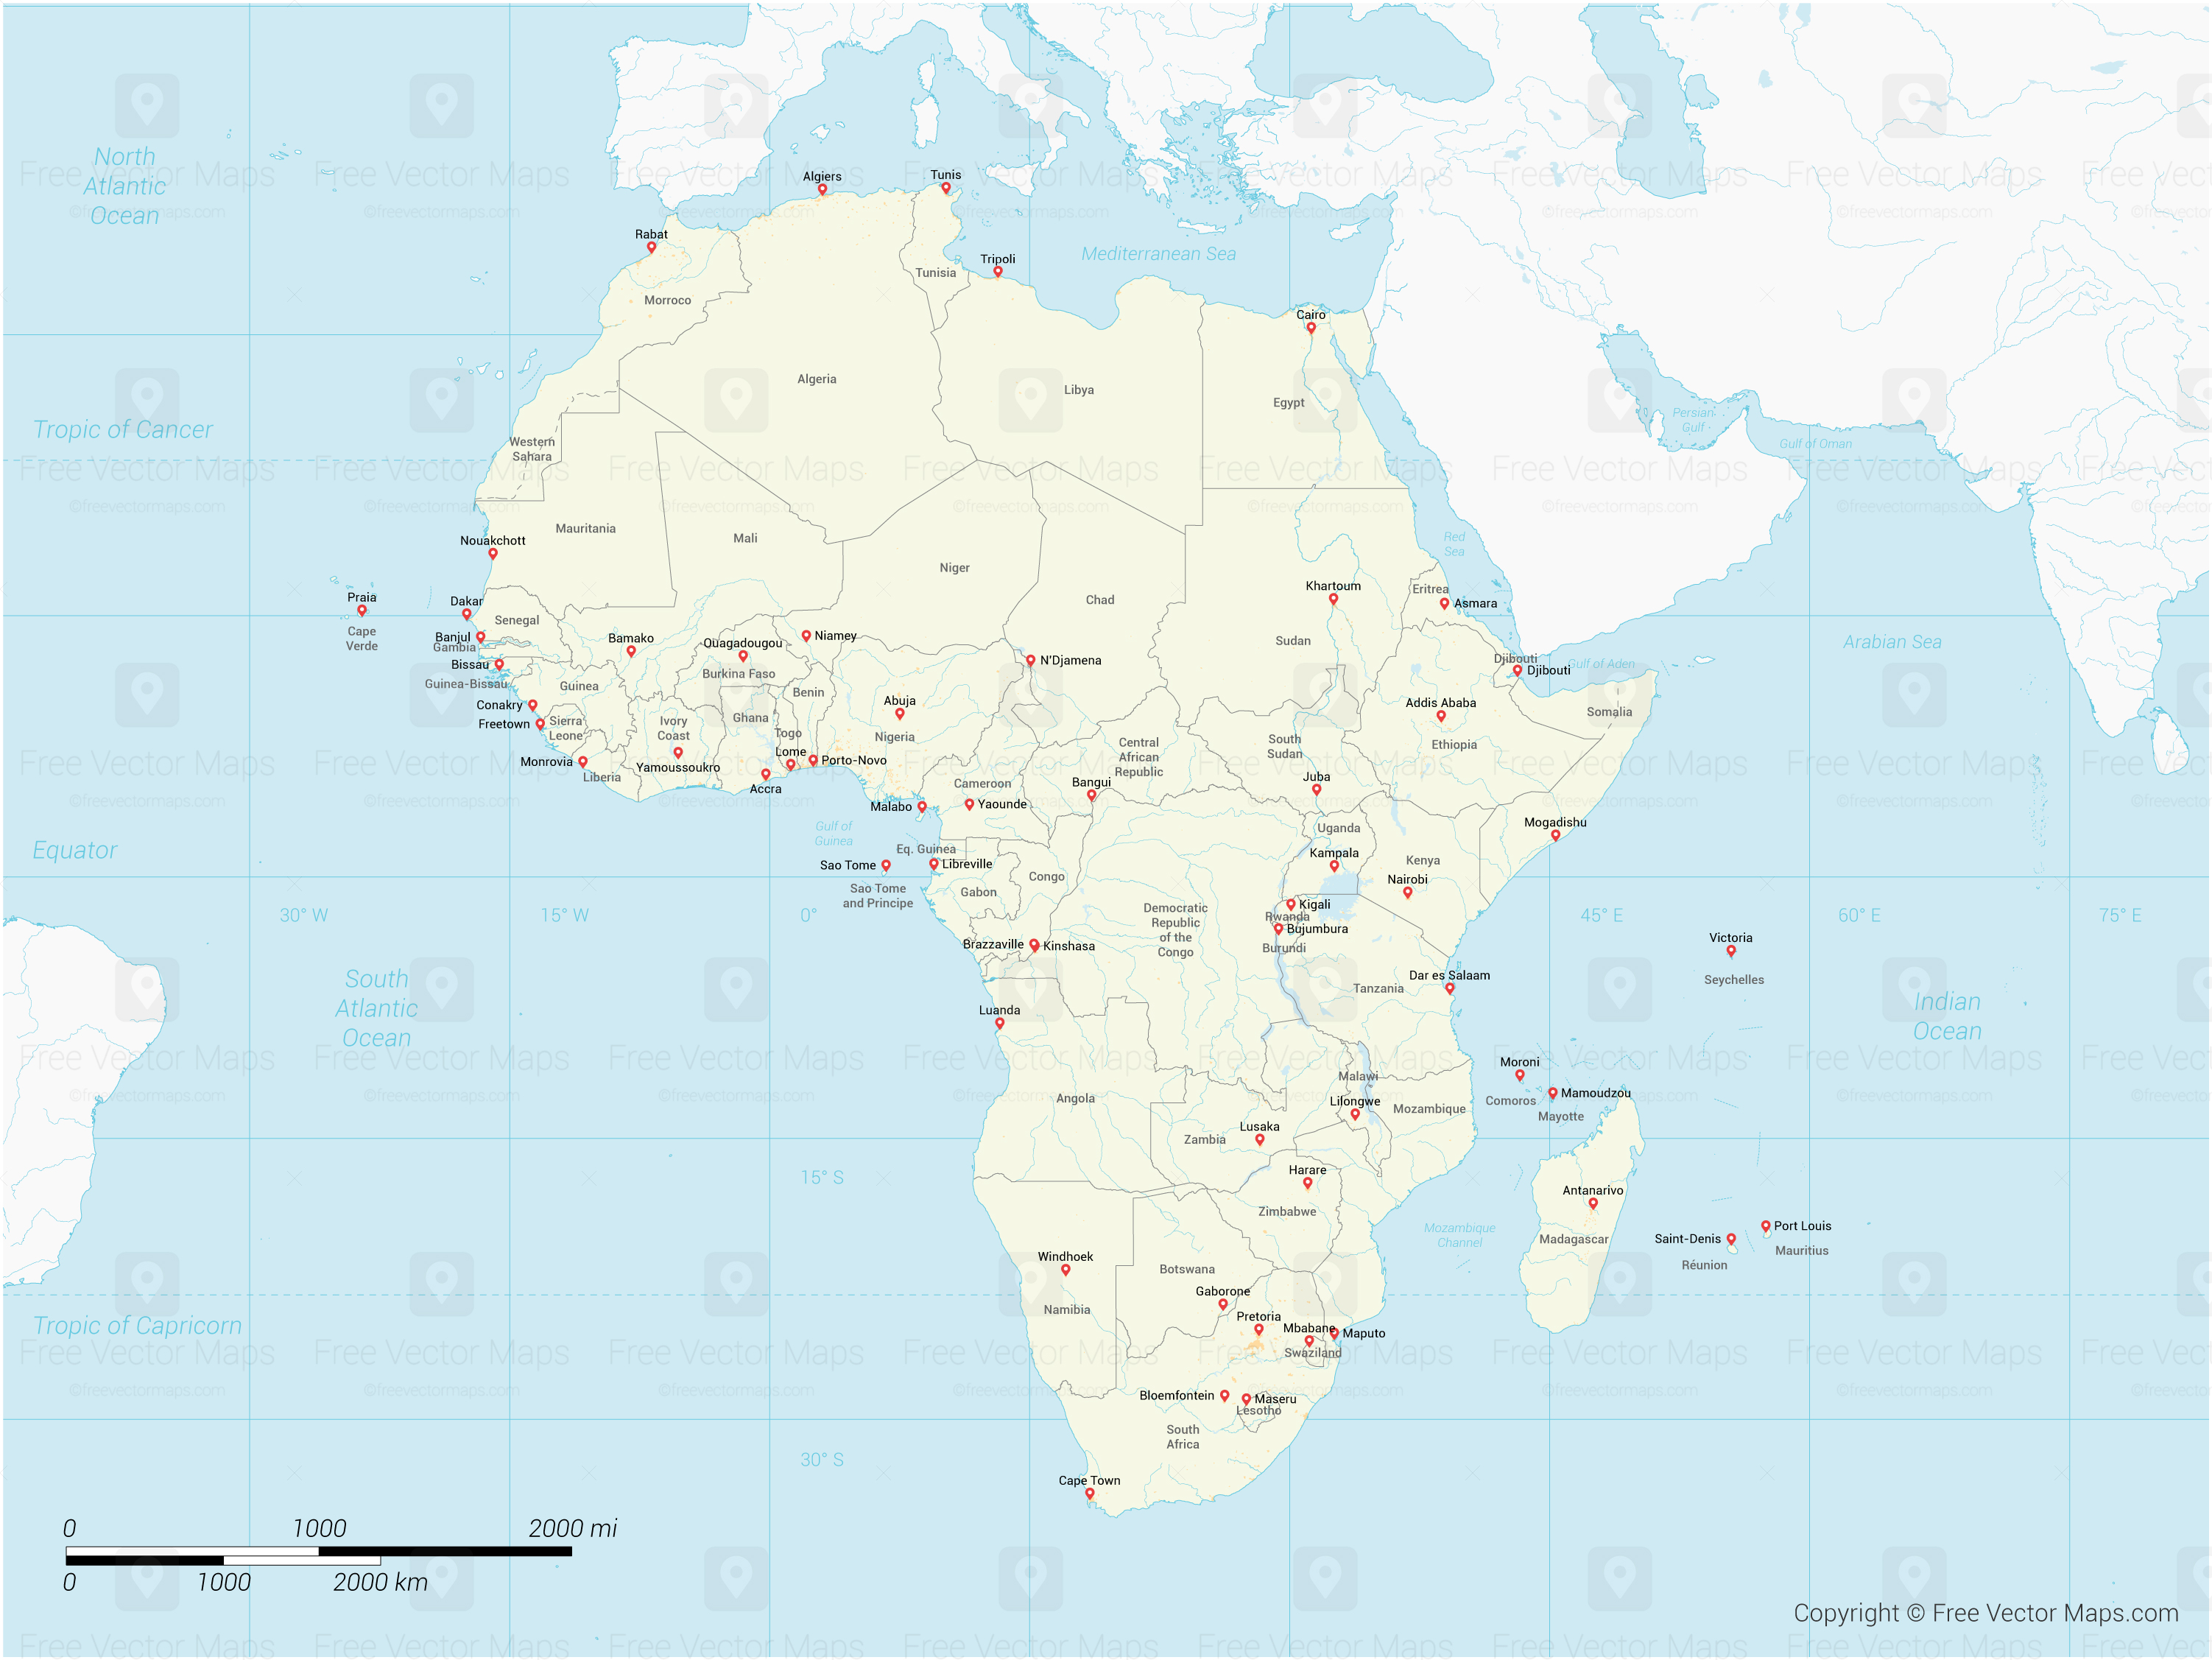 Vector Map of Africa with Countries   Free Vector Maps Map of Africa with Countries